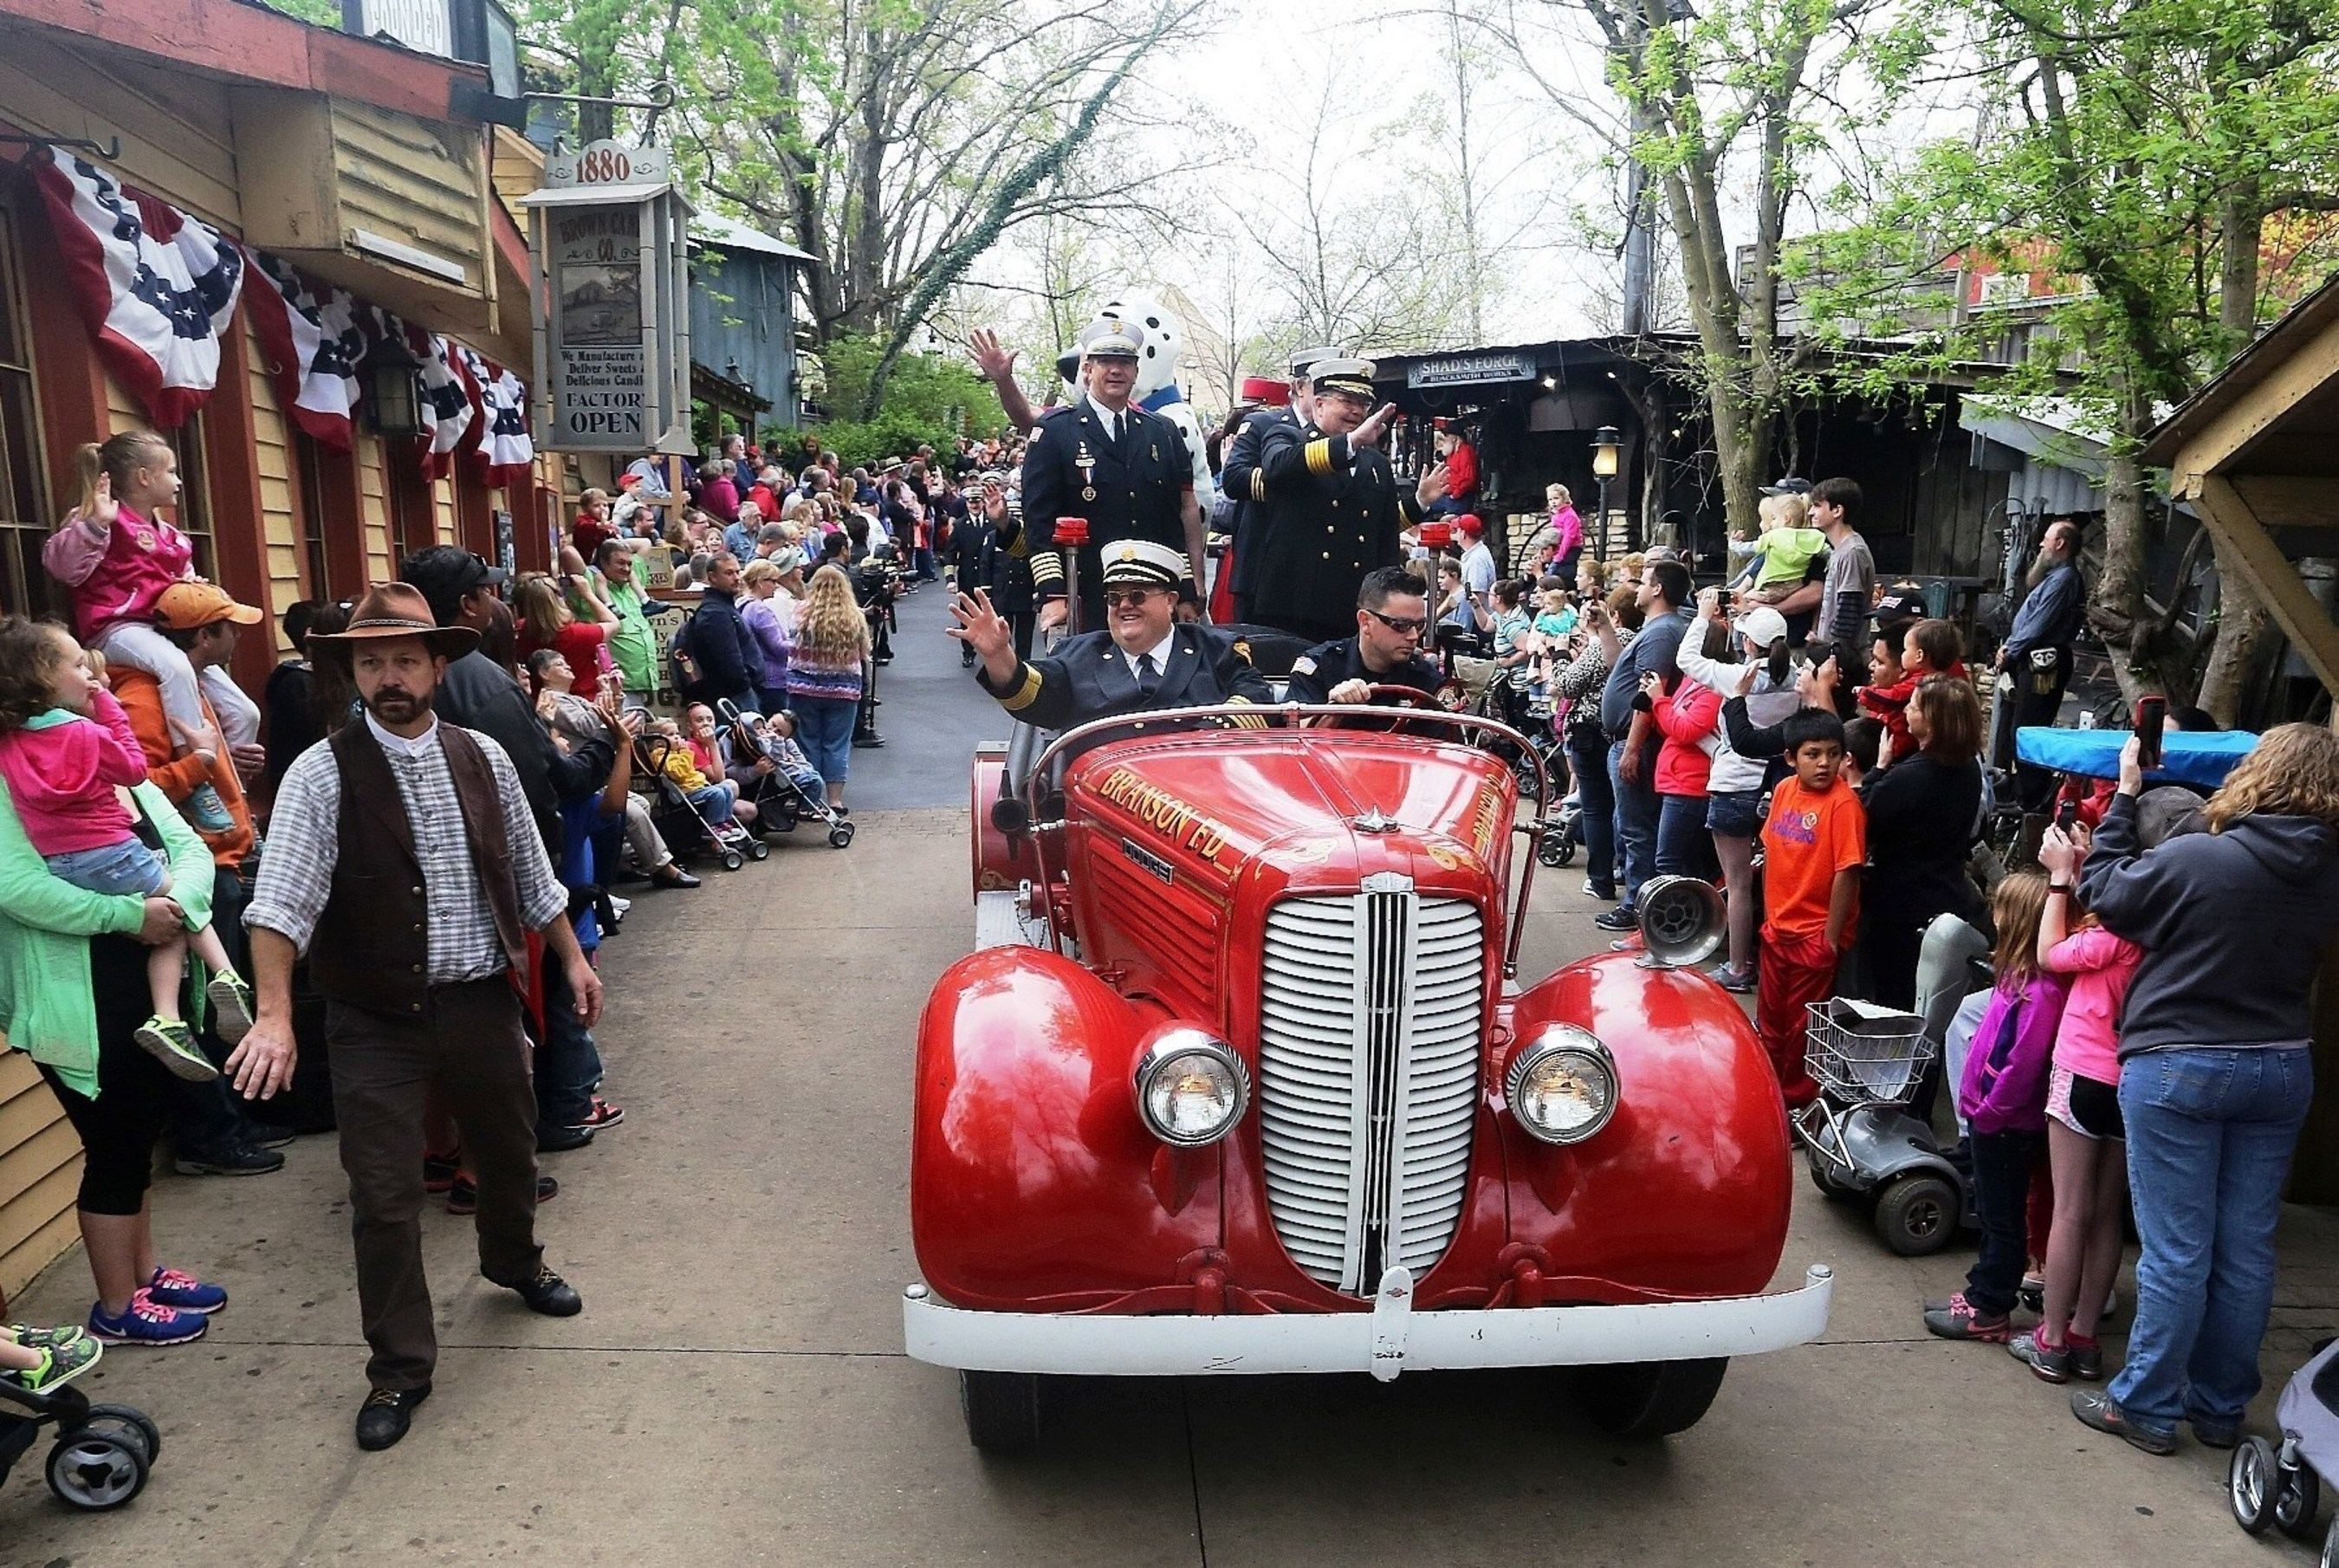 Uniformed firefighters led a parade through the streets of Silver Dollar City to Fireman's Landing, the theme park's new area with 10 family adventures, themed as a volunteer firefighter recruitment fair.